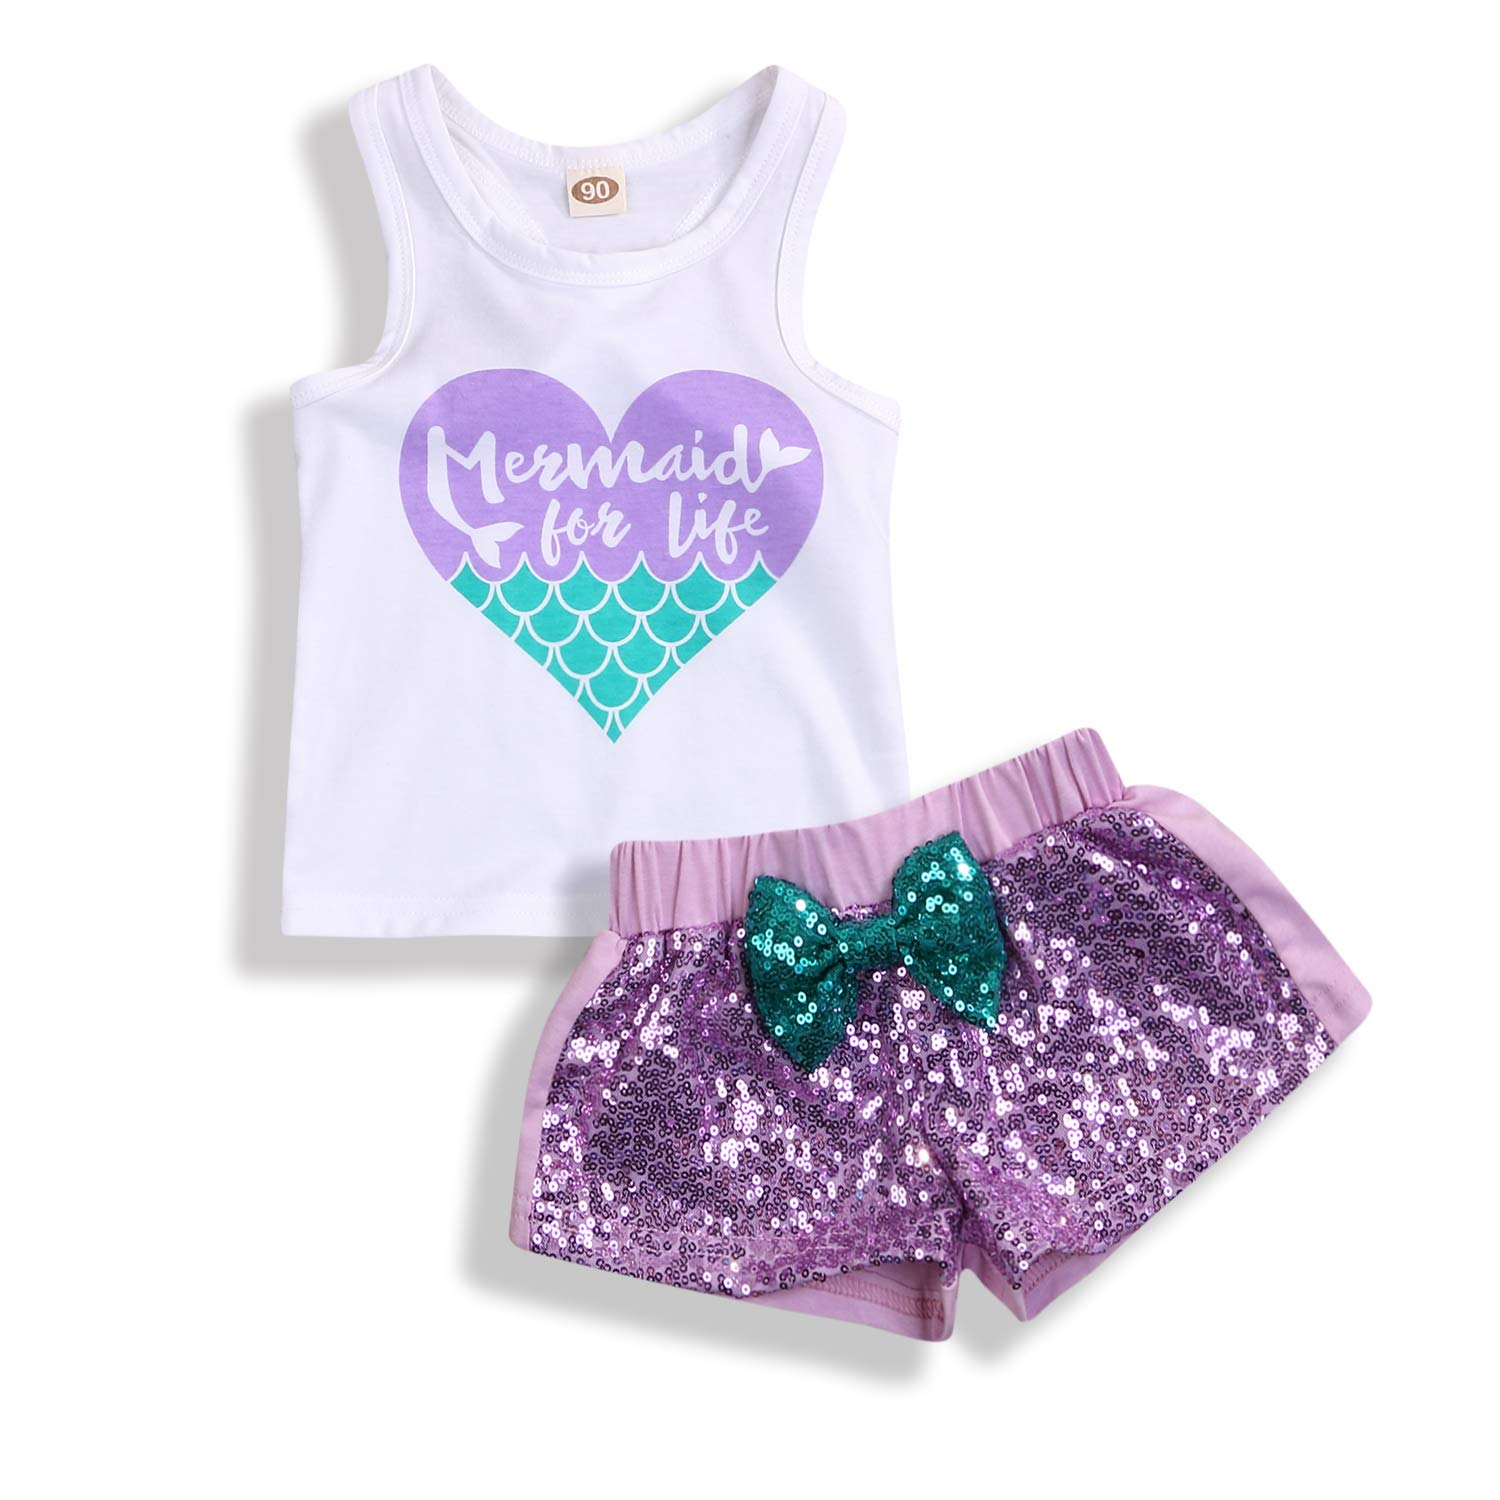 2Pcs Baby Girls Mermaid Outfits Heart Letter Printed Vest Tops Sequin Shorts Summer Clothes Set